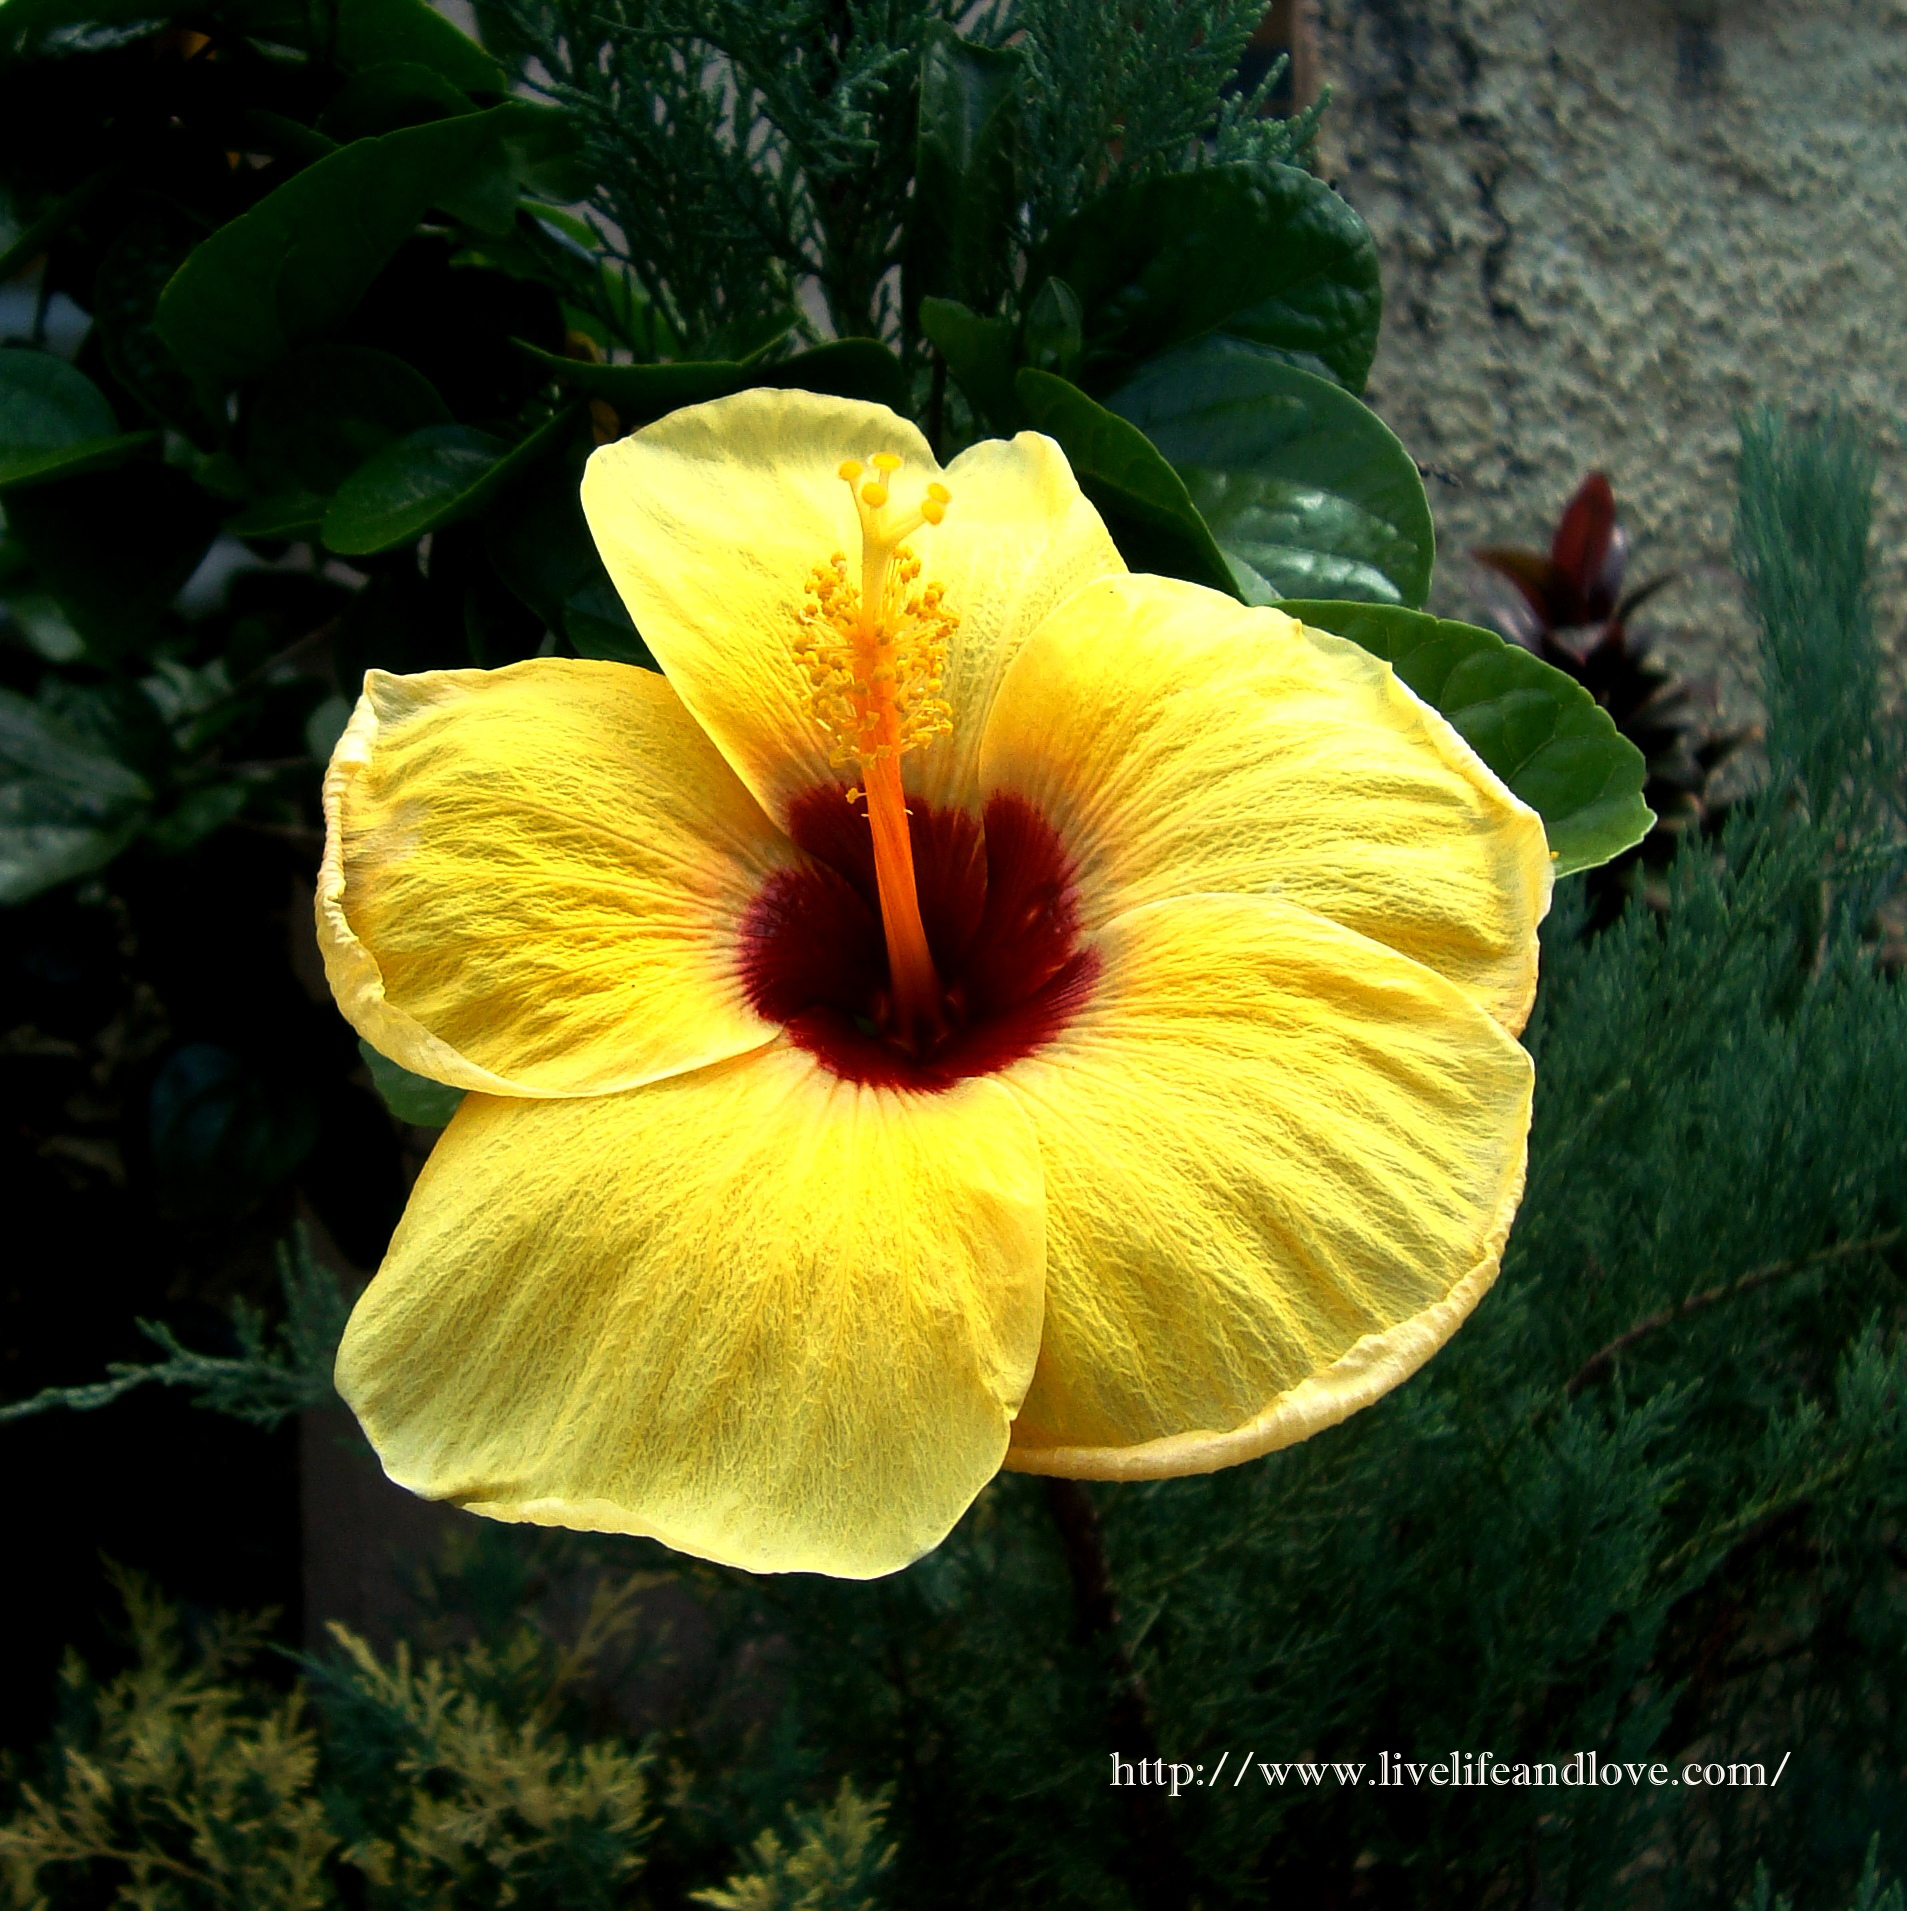 Yellow Hibiscus Flower Live Life And Love